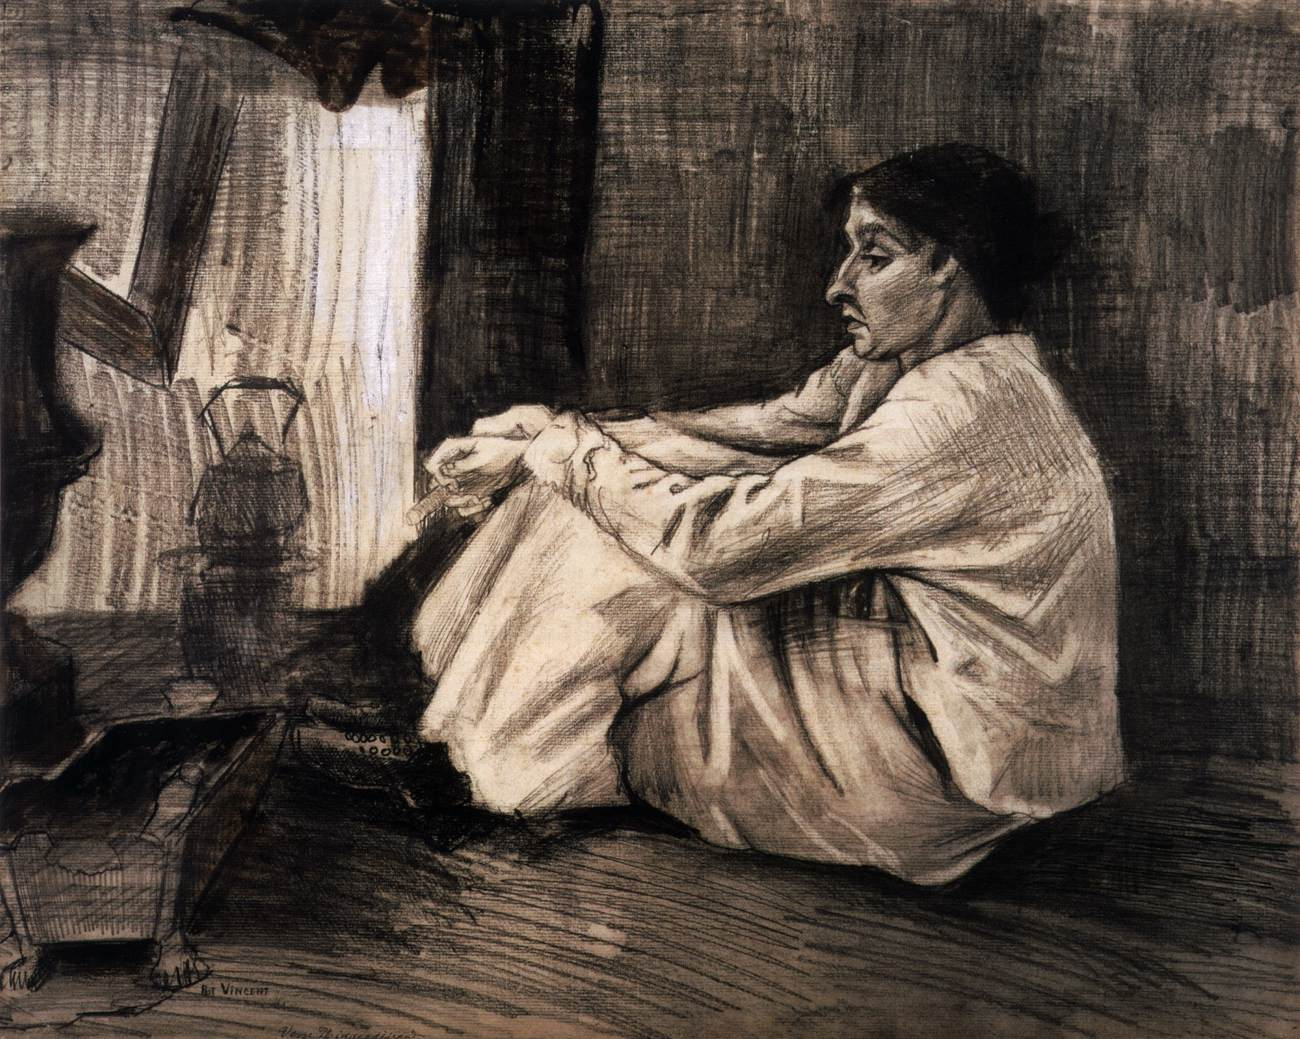 Sien With Cigar Sitting On Floor Near Stove, by Vincent Van Gogh,